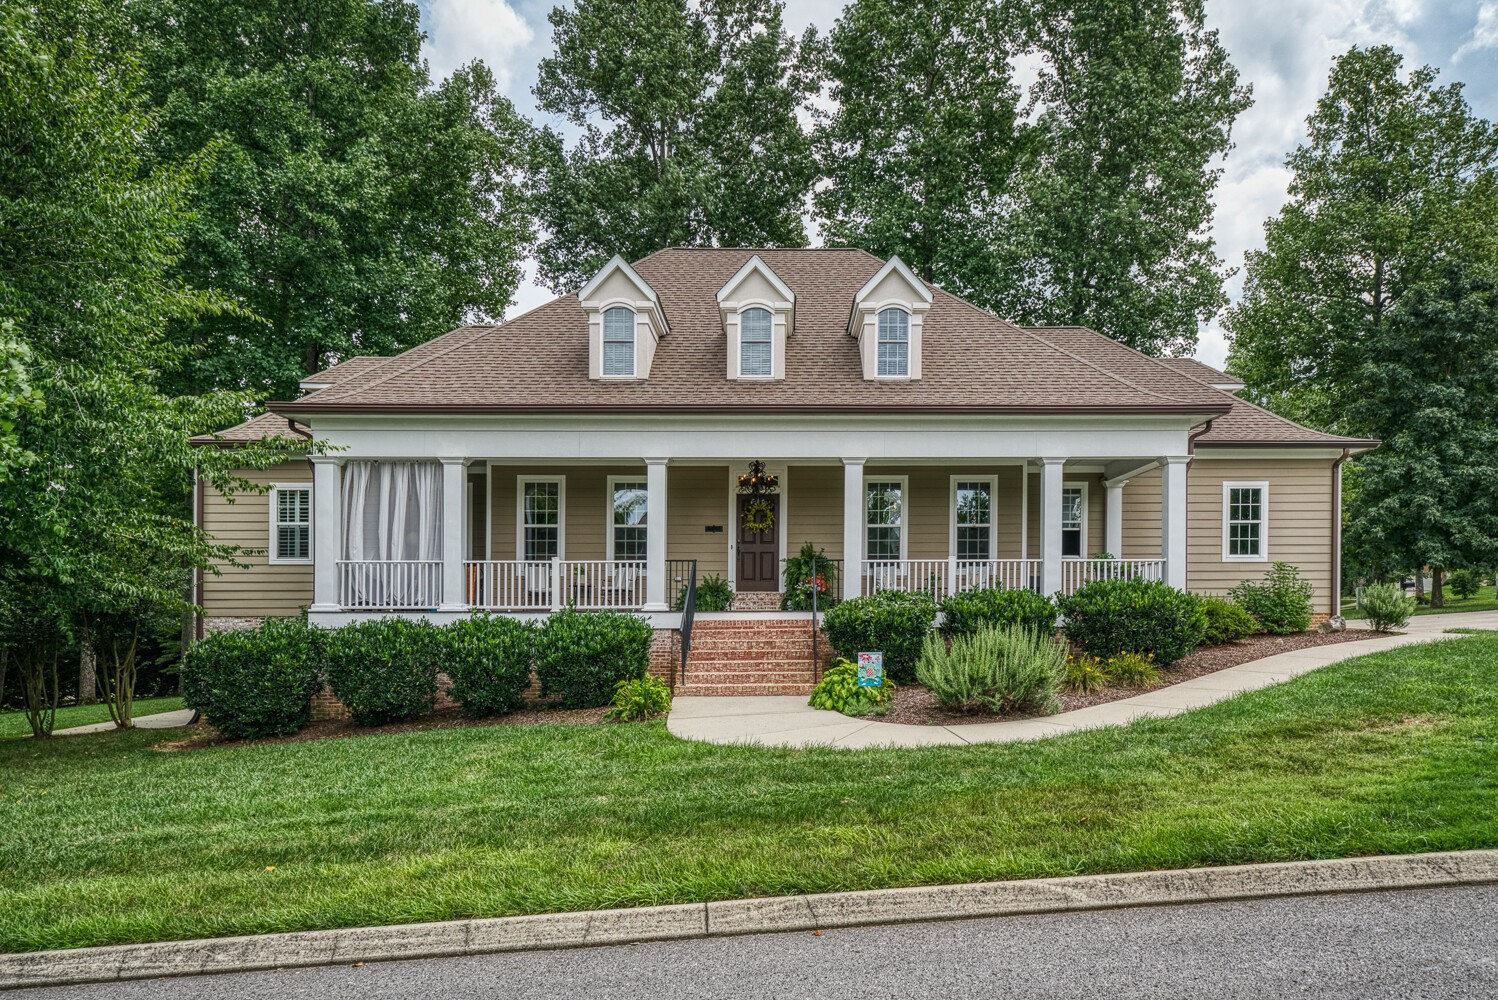 303 Enclave Cir Property Photo - Cookeville, TN real estate listing